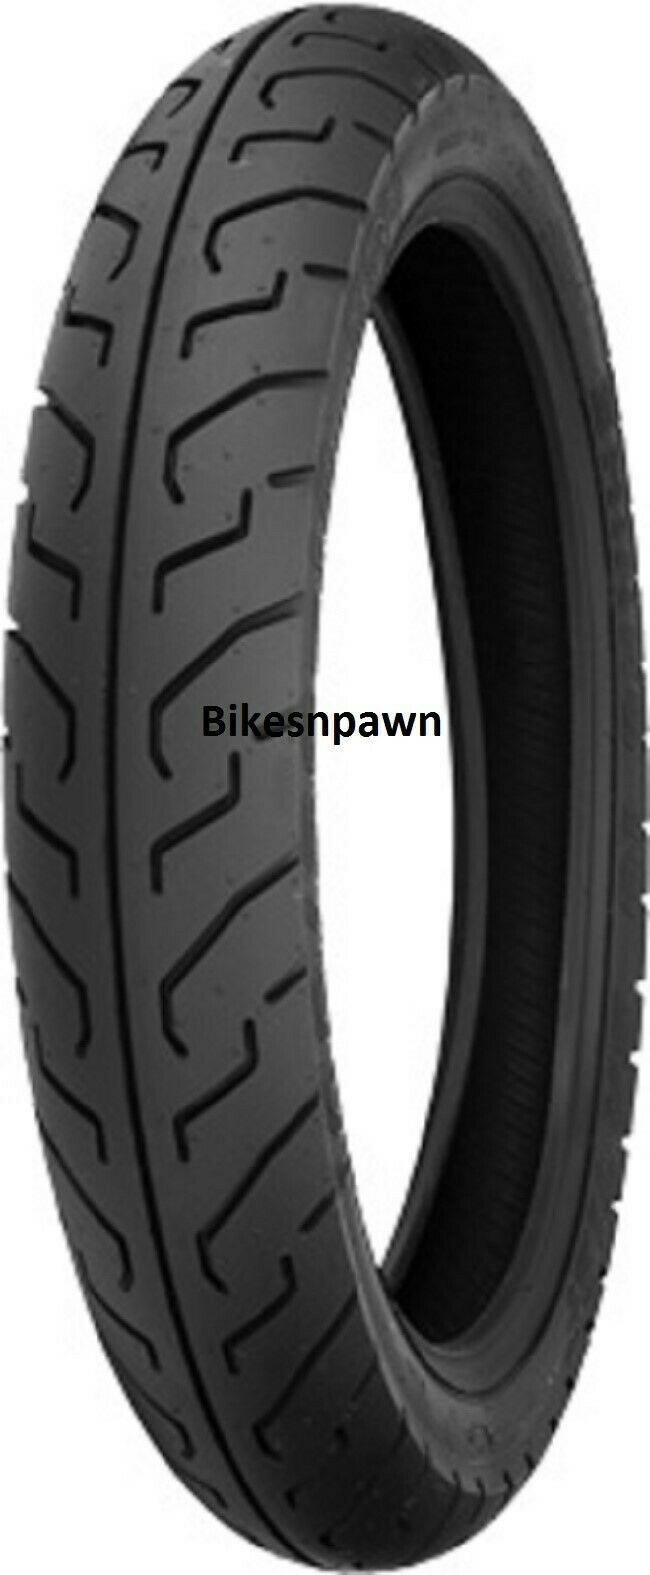 New Shinko 712 3.00-18 Front Tire 55 H Tubeless 87-4157